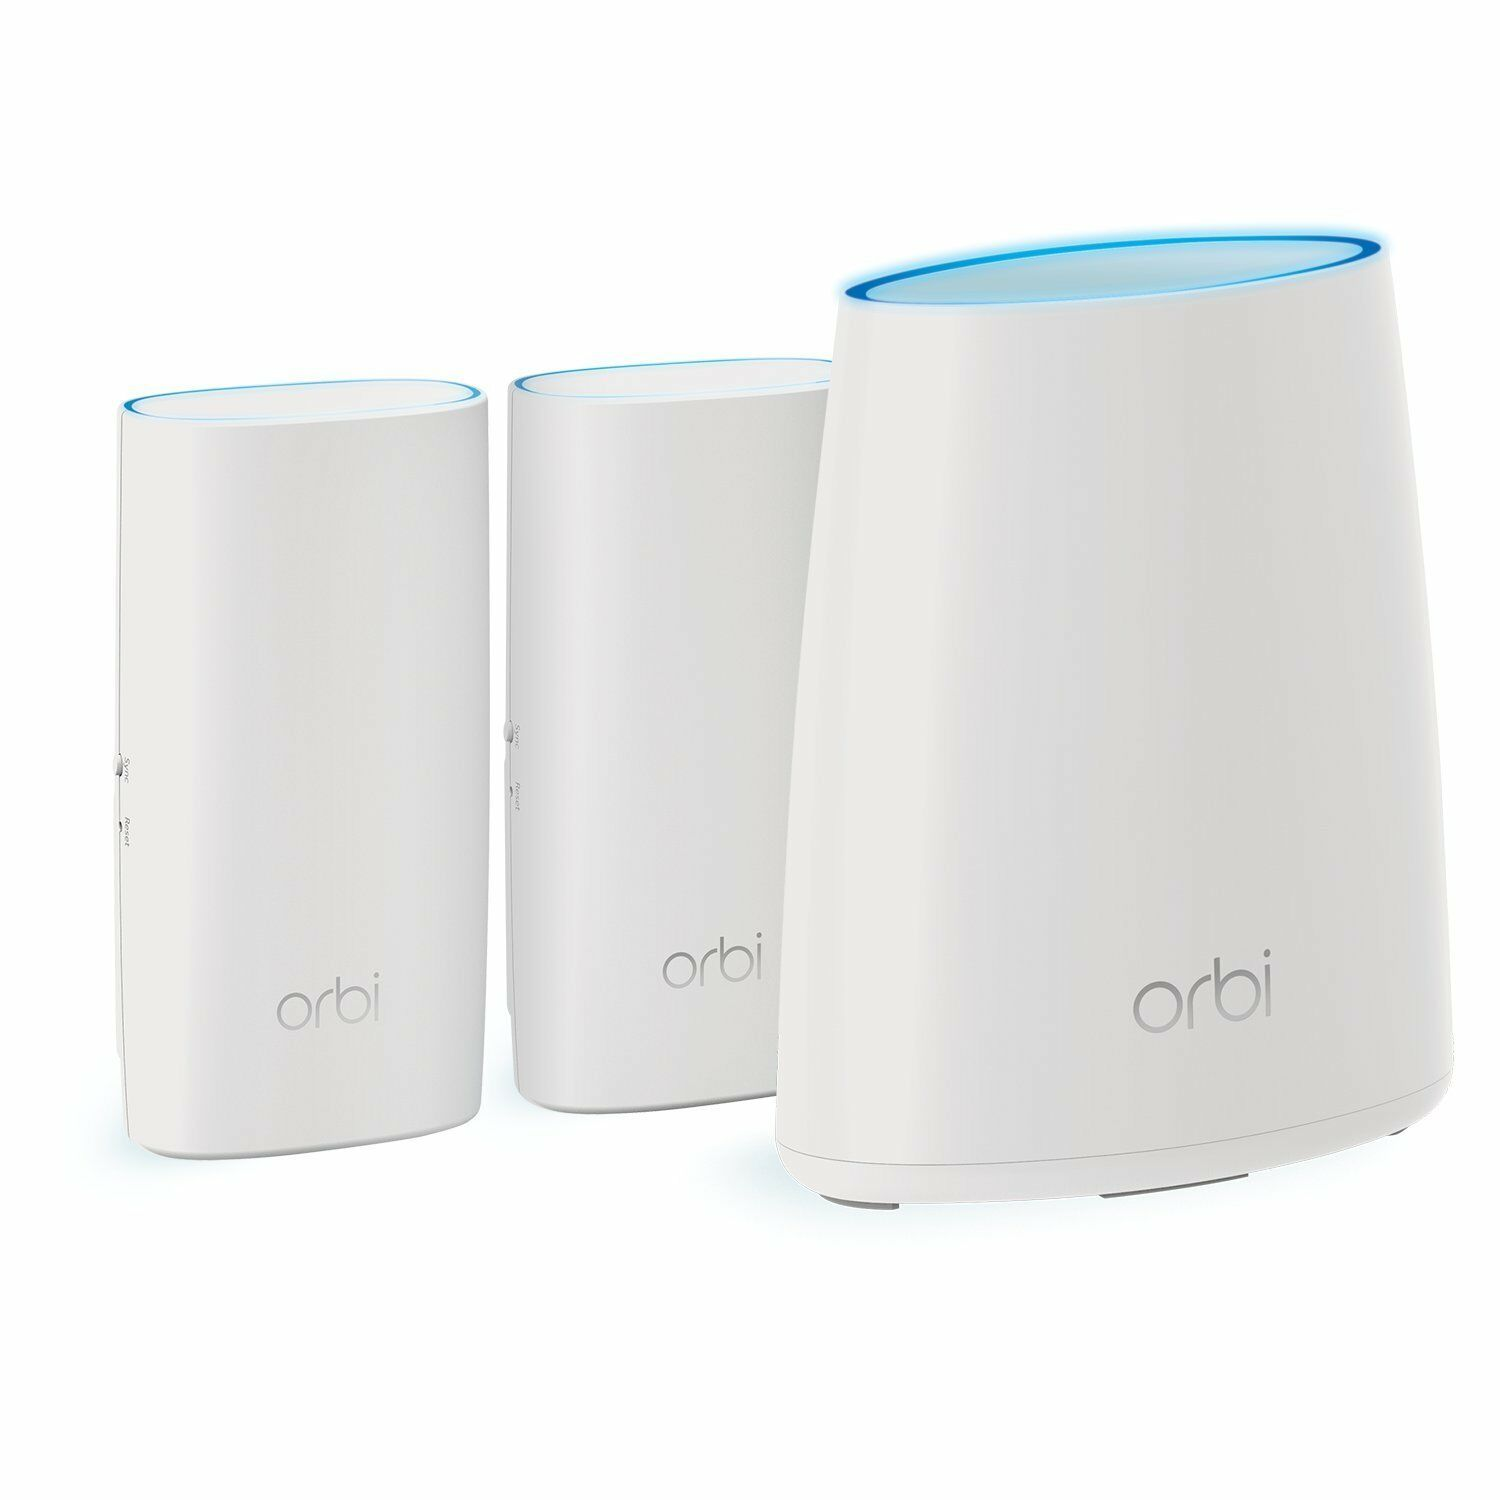 NETGEAR Orbi Wall-Plug Whole Home Mesh WiFi System - WiFi Ro